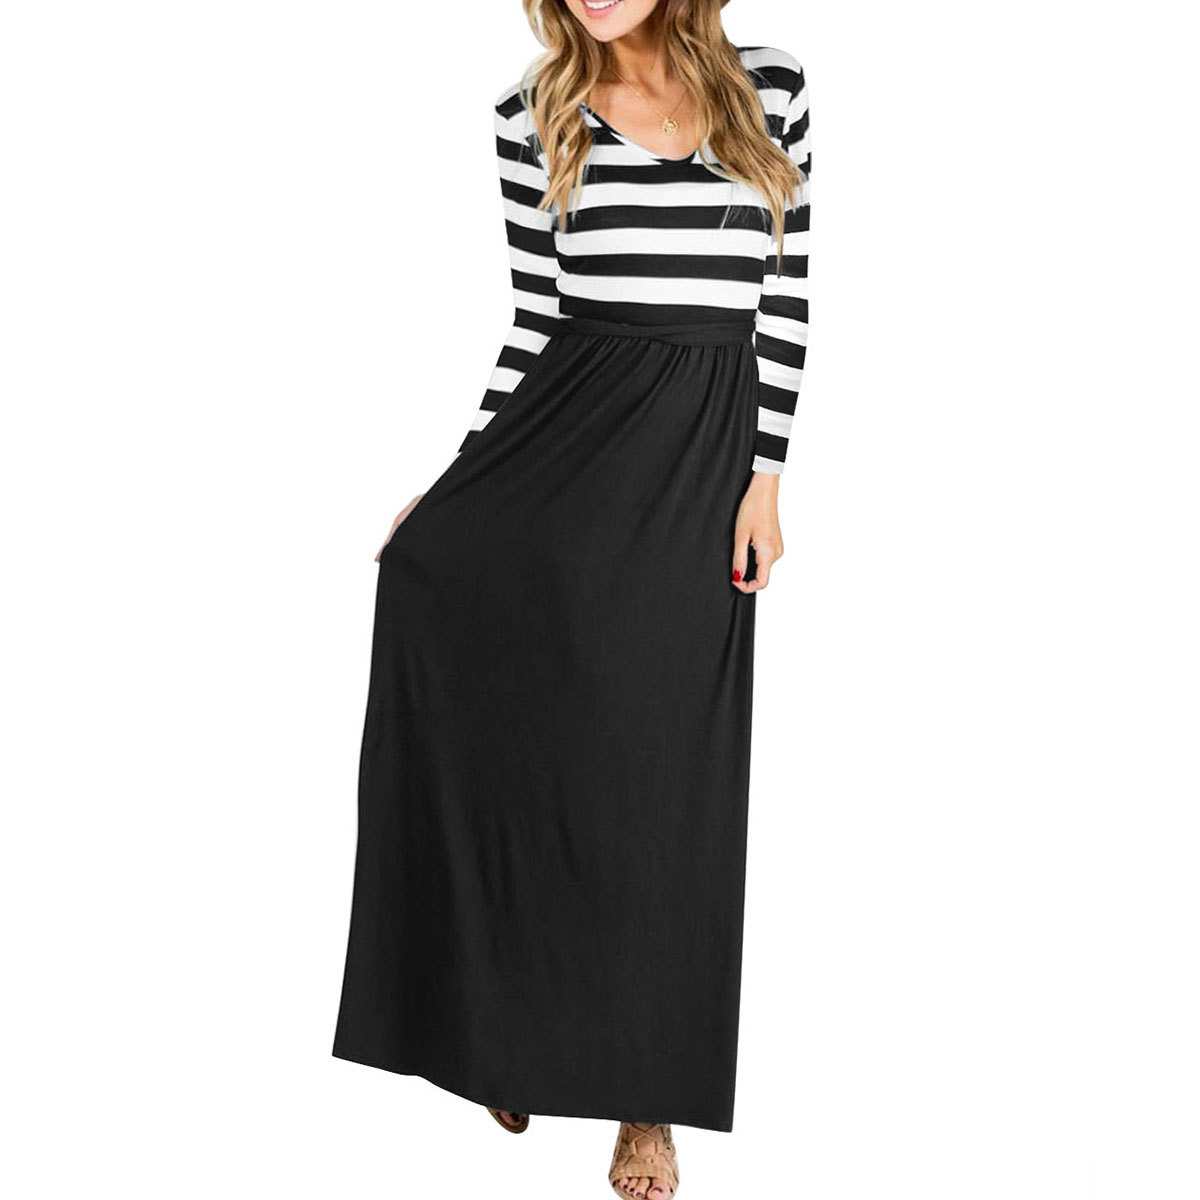 38b67dc831c13 US $12.4 |2018 autumn new style European and American ladies' long dresses,  Amazon explosion, round neck stripes, long sleeved dress.-in Dresses from  ...